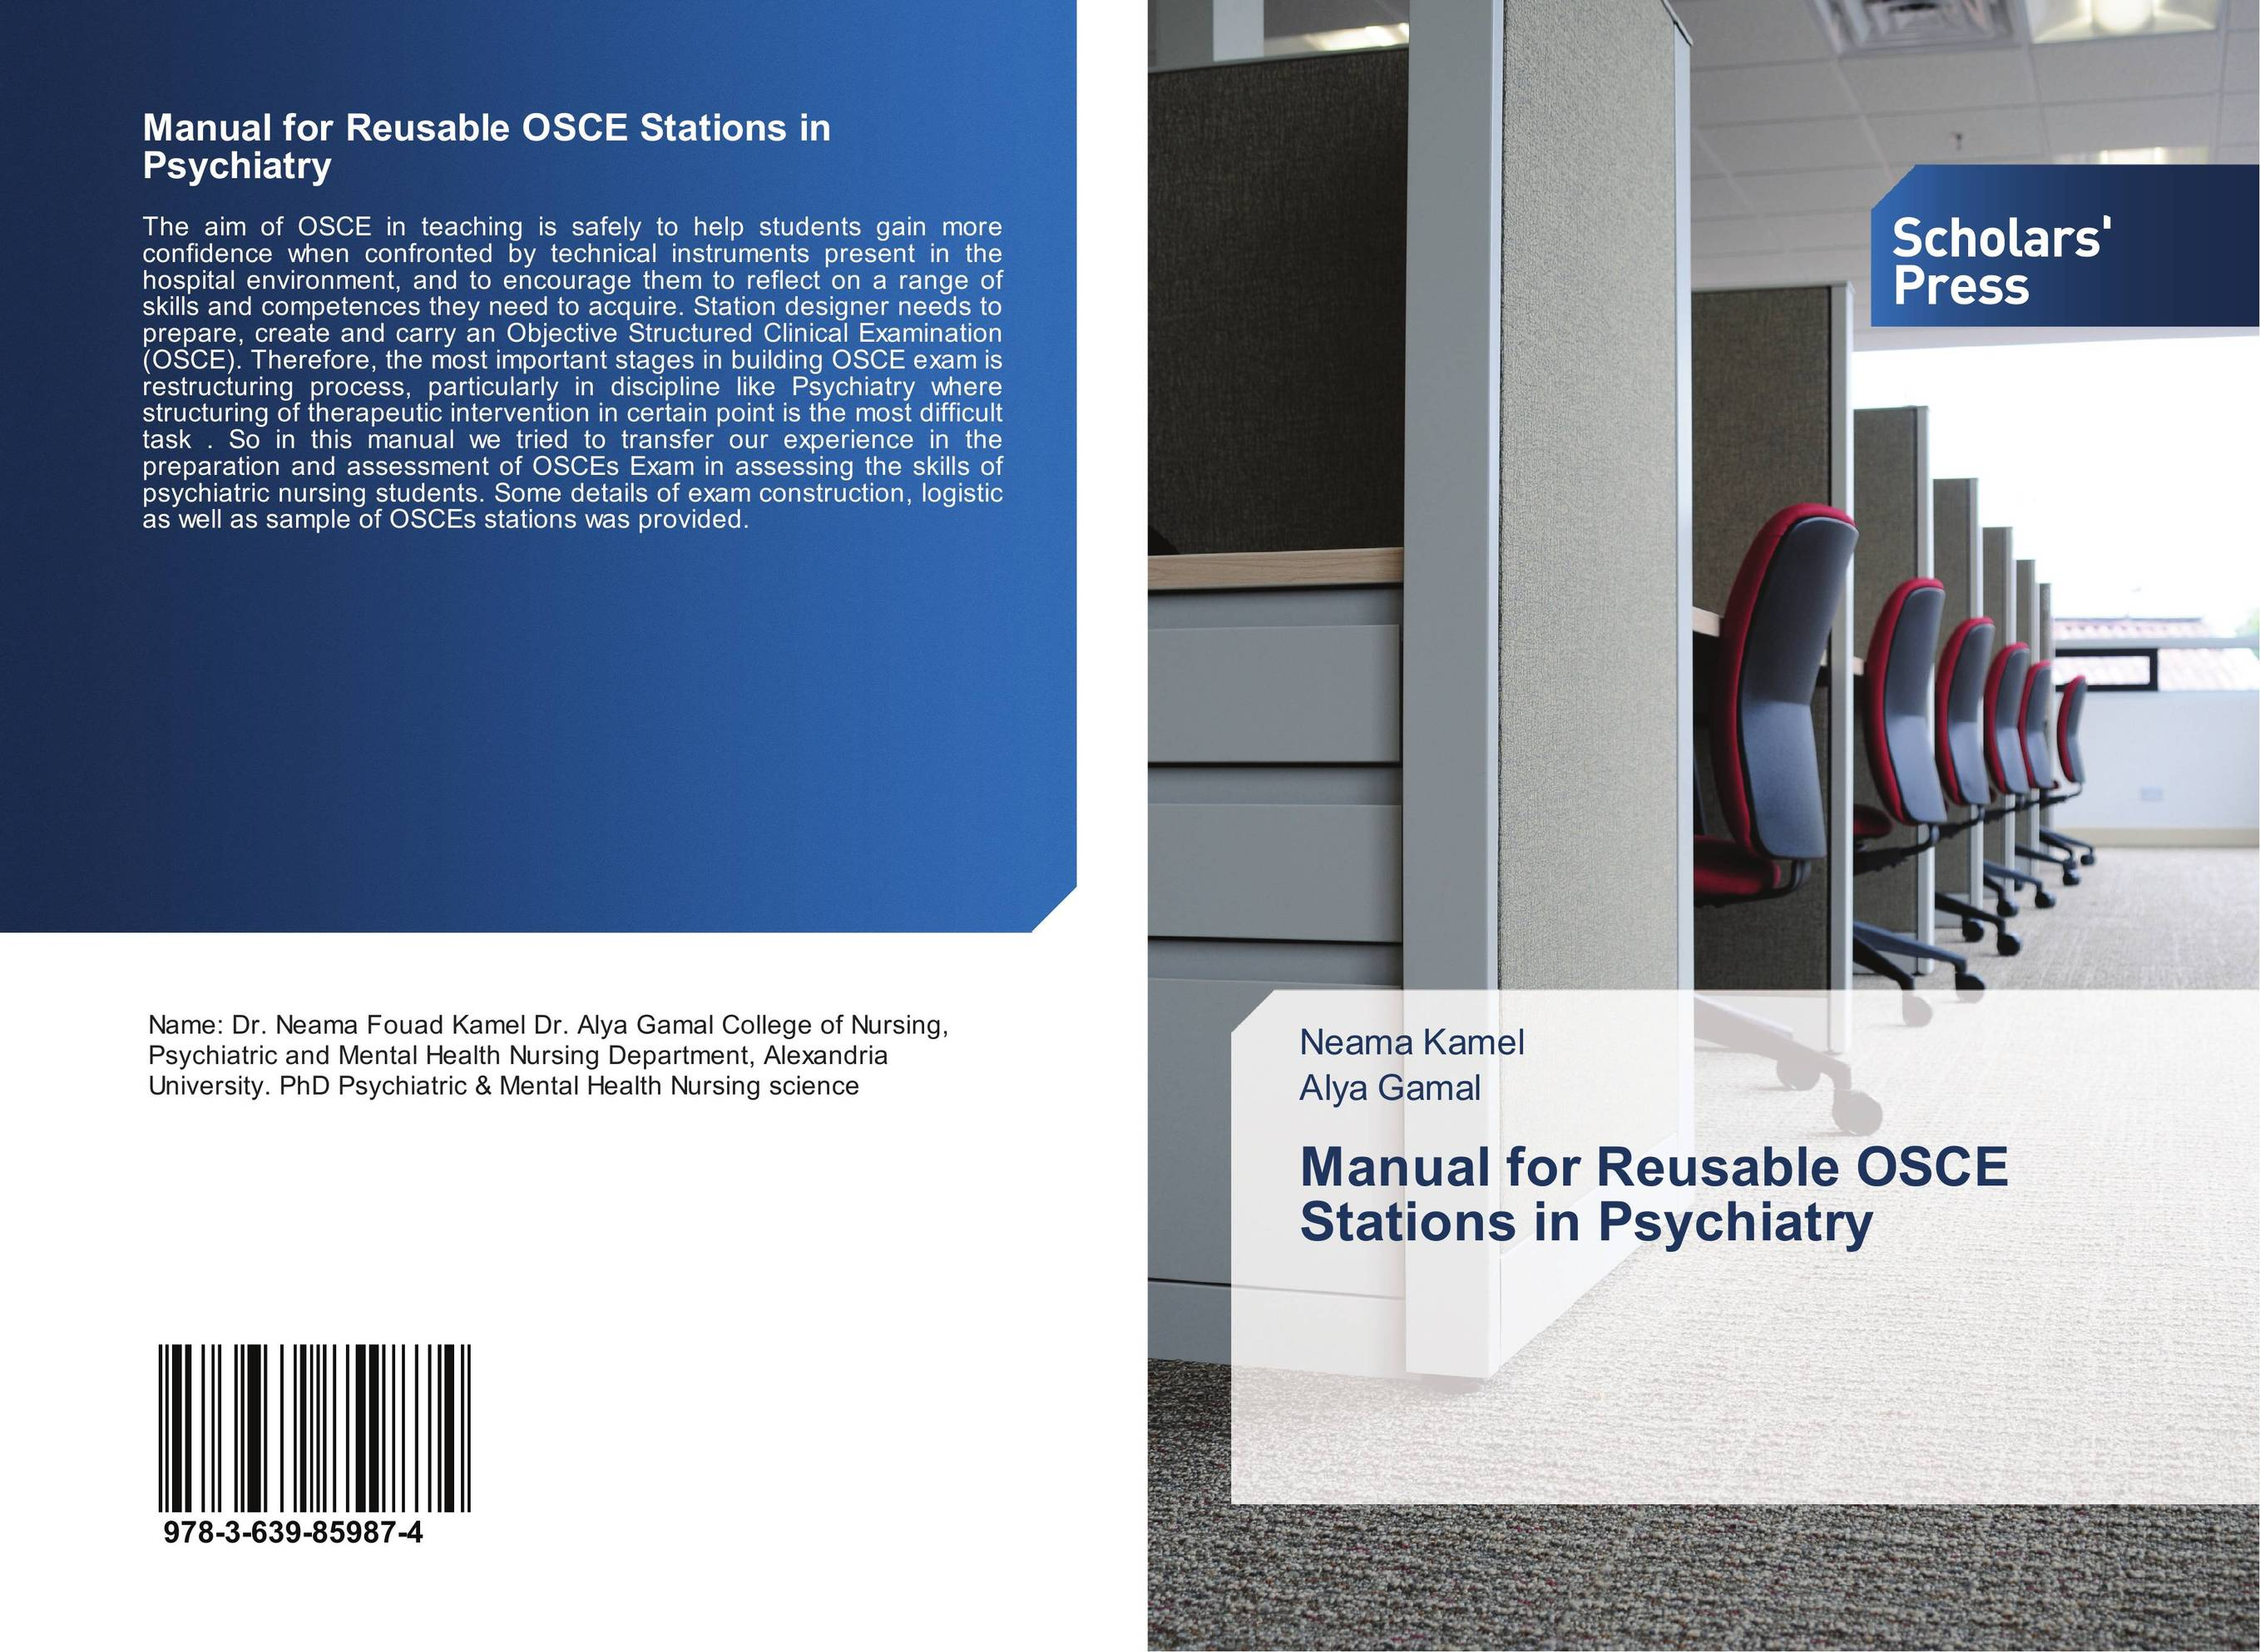 Manual for Reusable OSCE Stations in Psychiatry philosophical issues in psychiatry iv